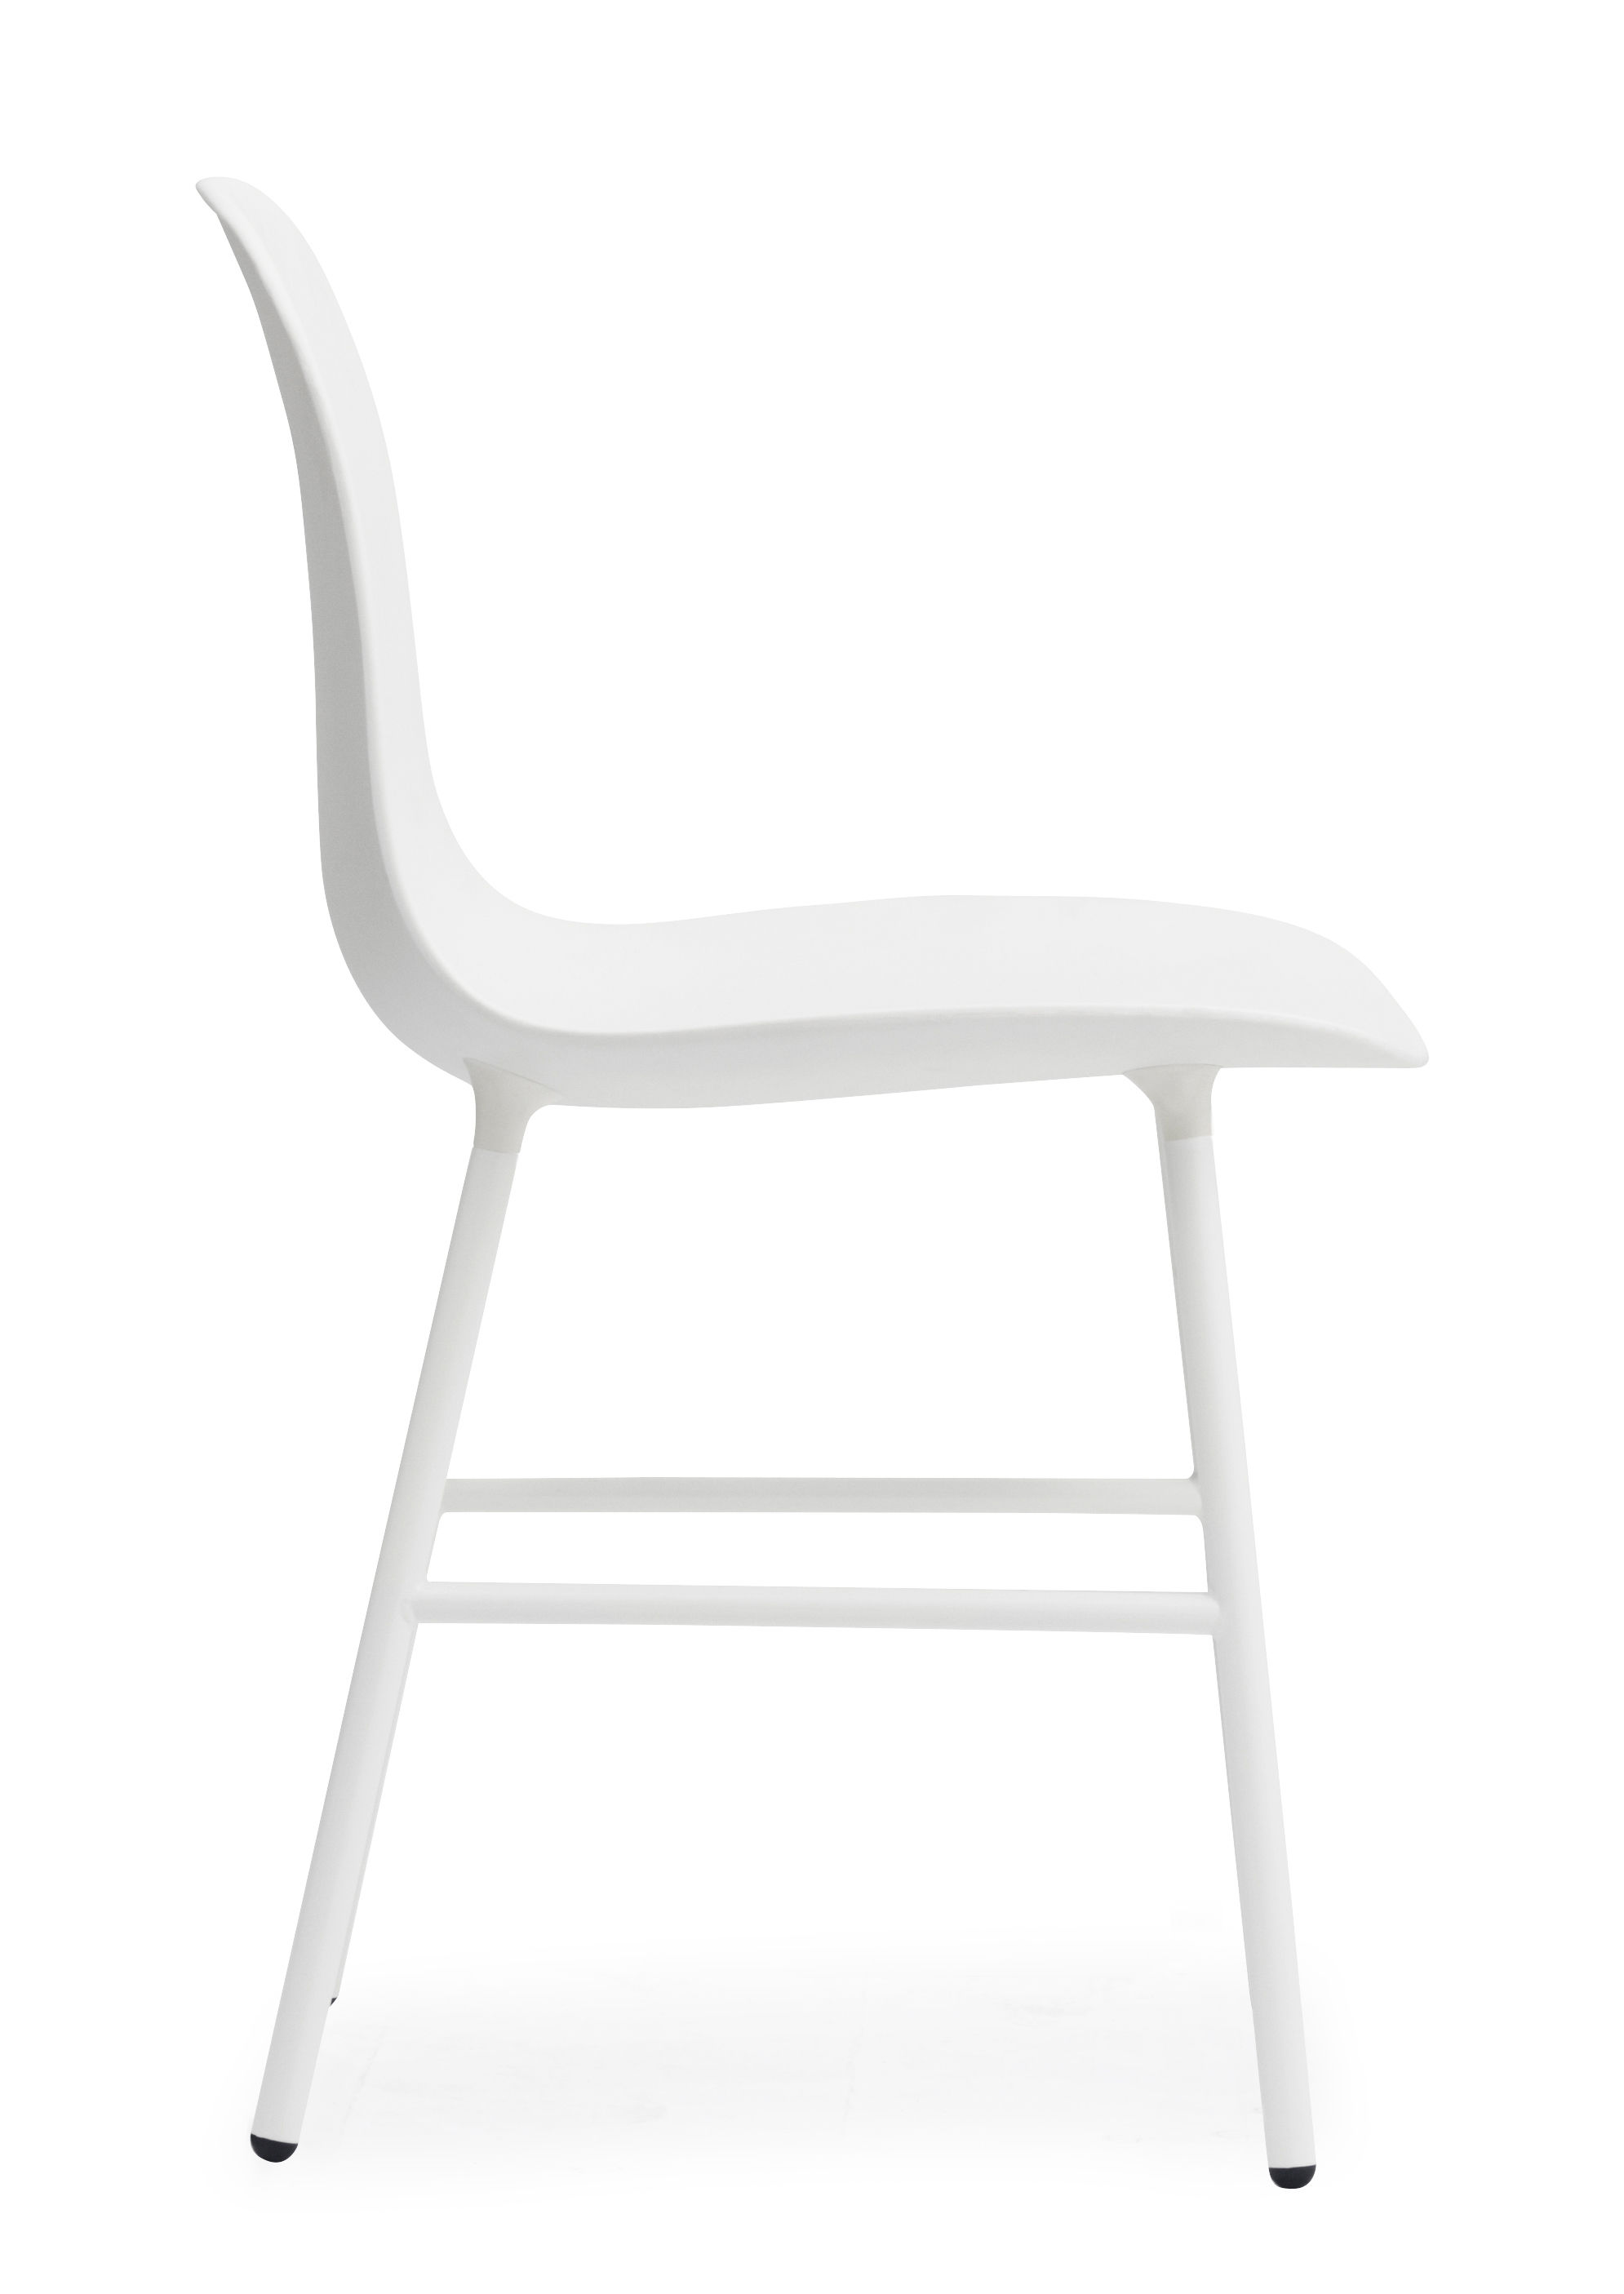 Chaise form pied m tal blanc normann copenhagen for Chaise pied metal